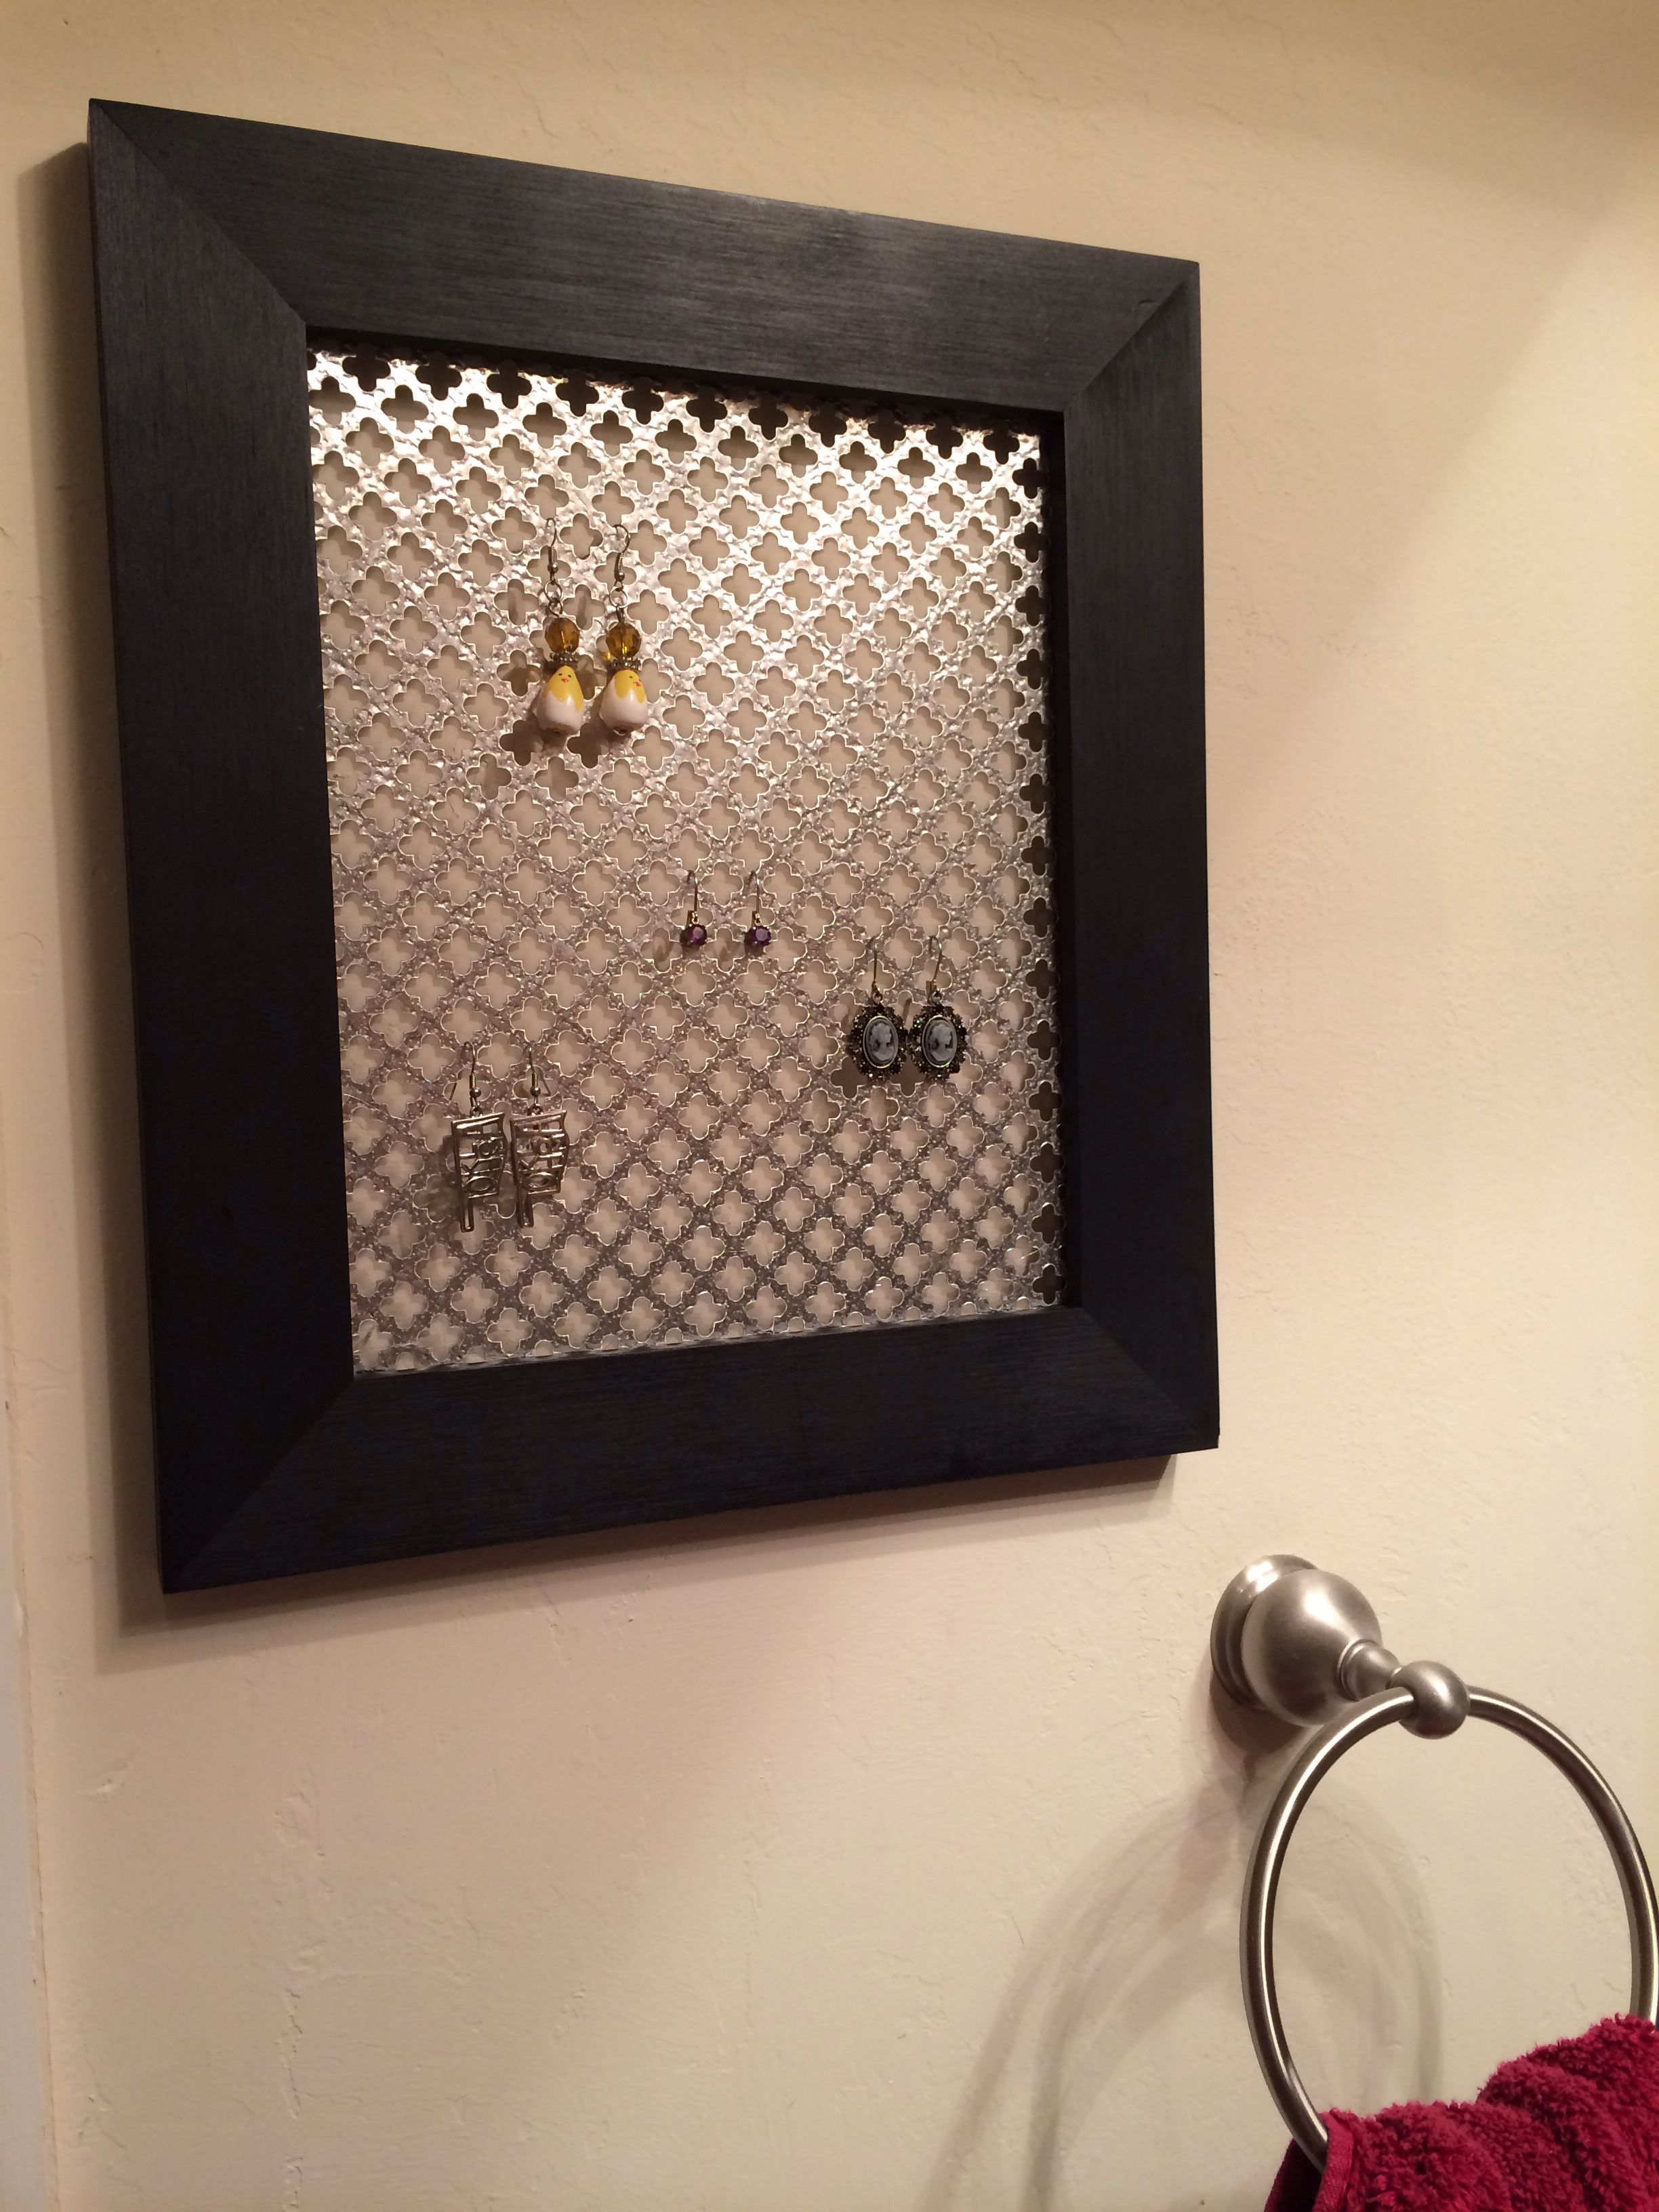 Earring Holder Out Of A Clearance Frame And Radiator Cover